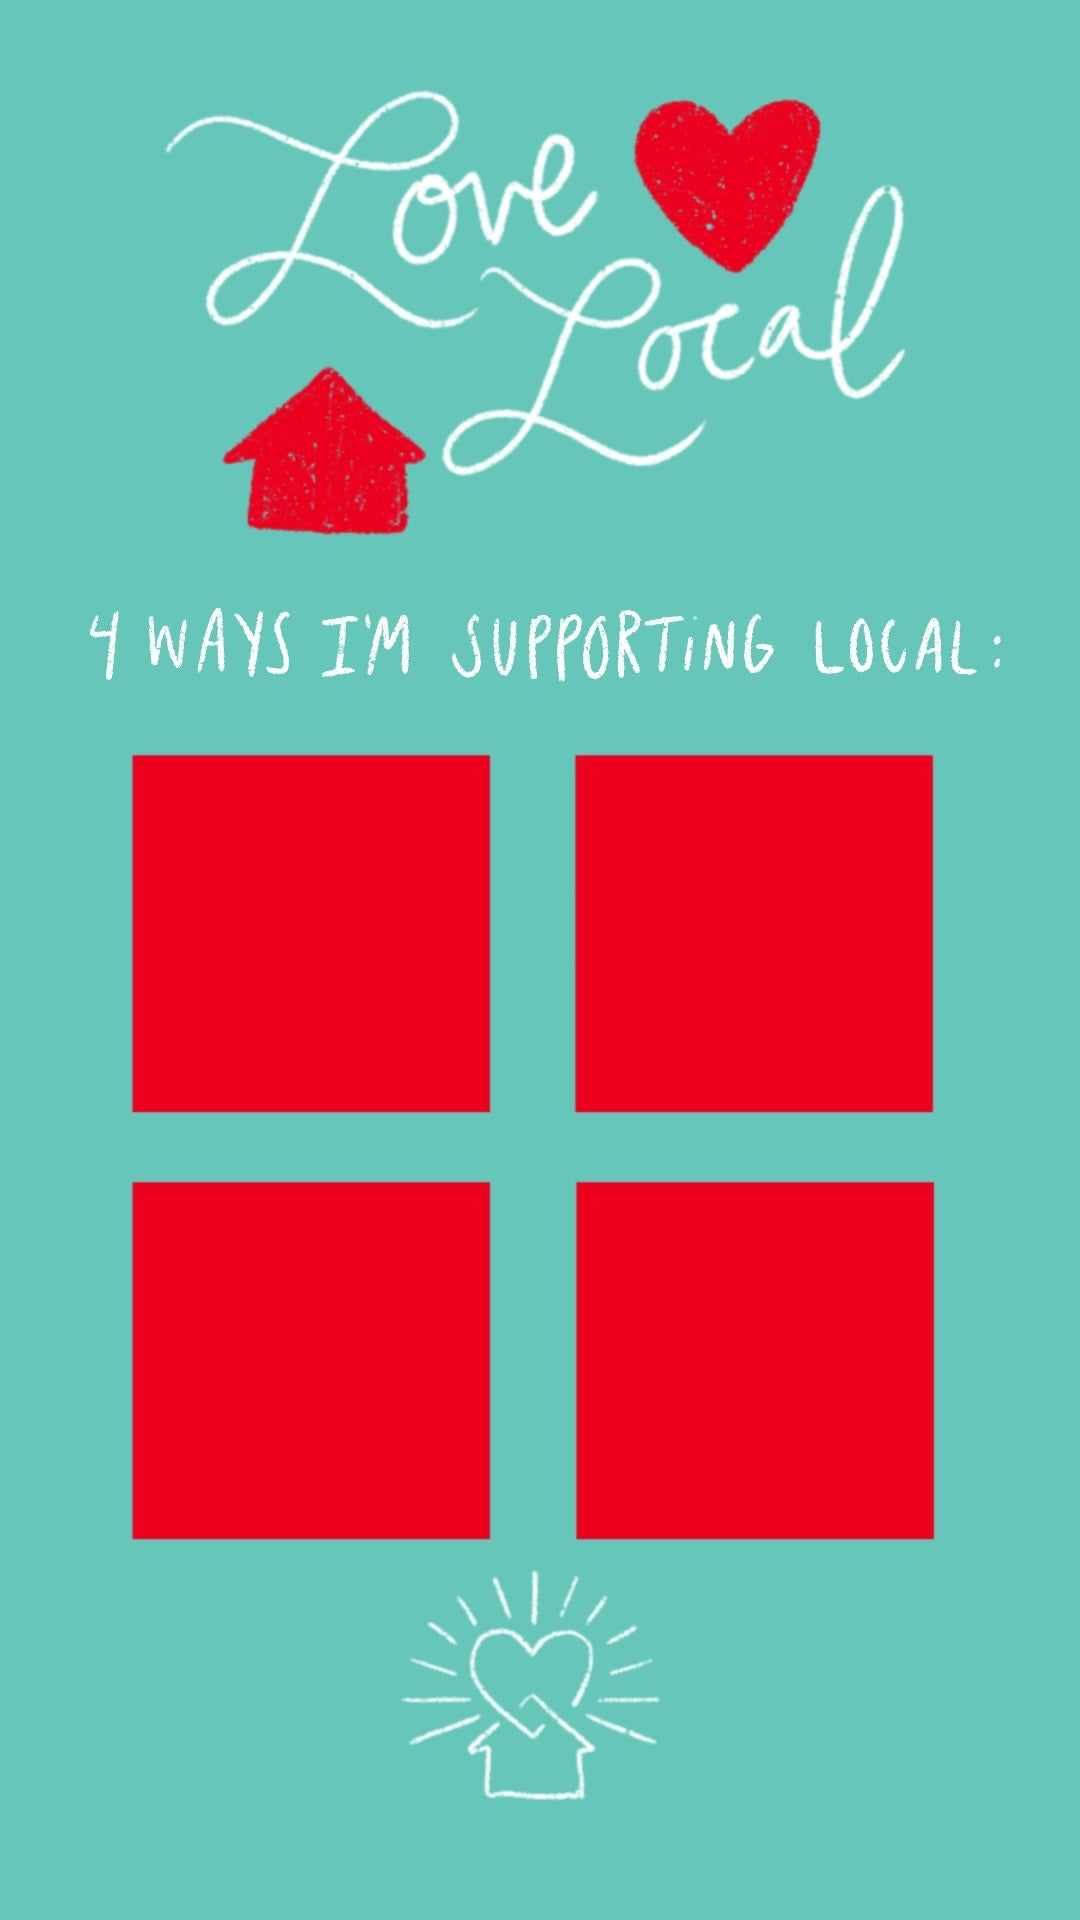 Fun Ways To Support Local on Social Media